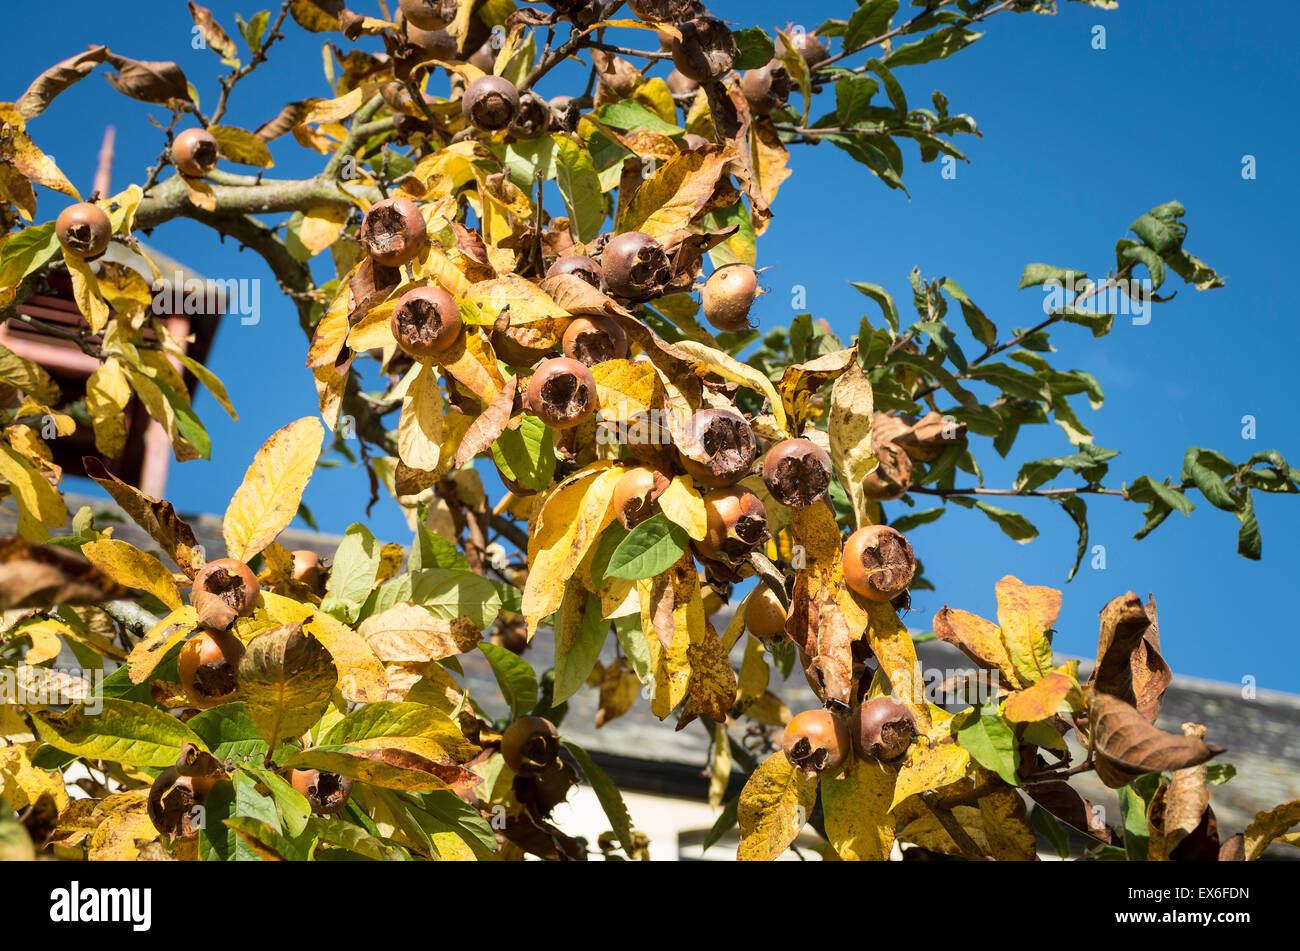 Fruit growing on a Medlar tree in UK - Stock Image